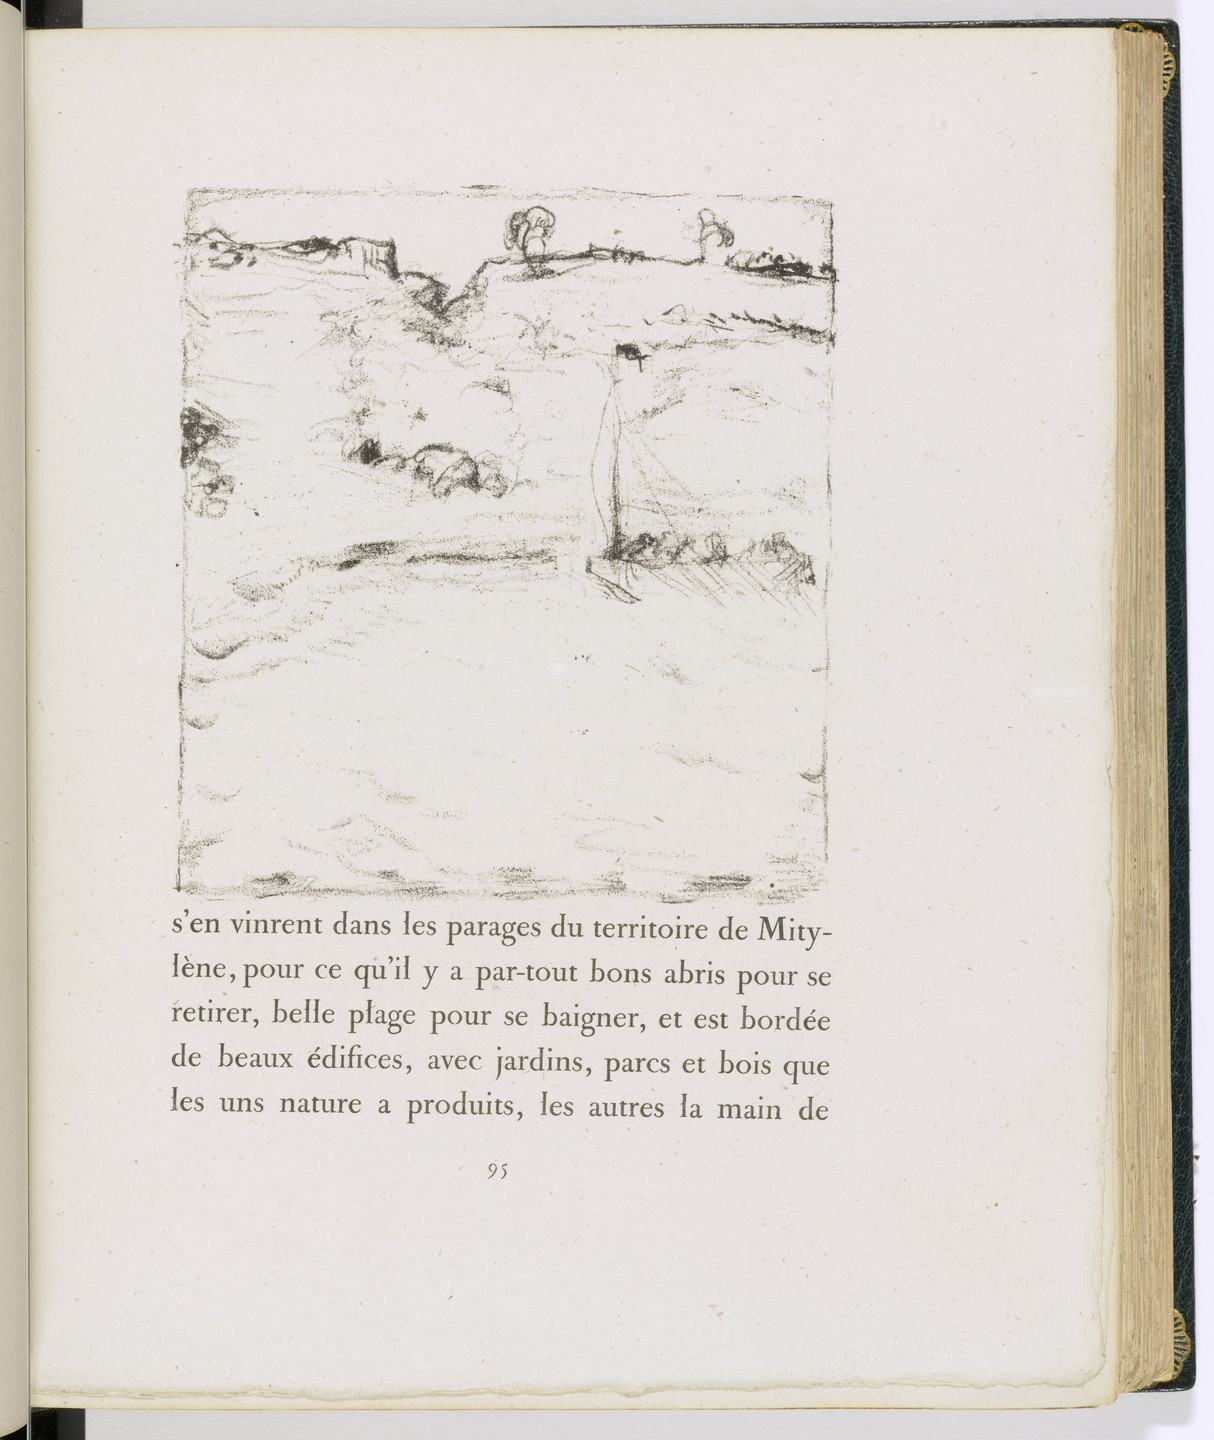 Pierre Bonnard. In-text plate (page 95) from Daphnis et Chloé. 1902